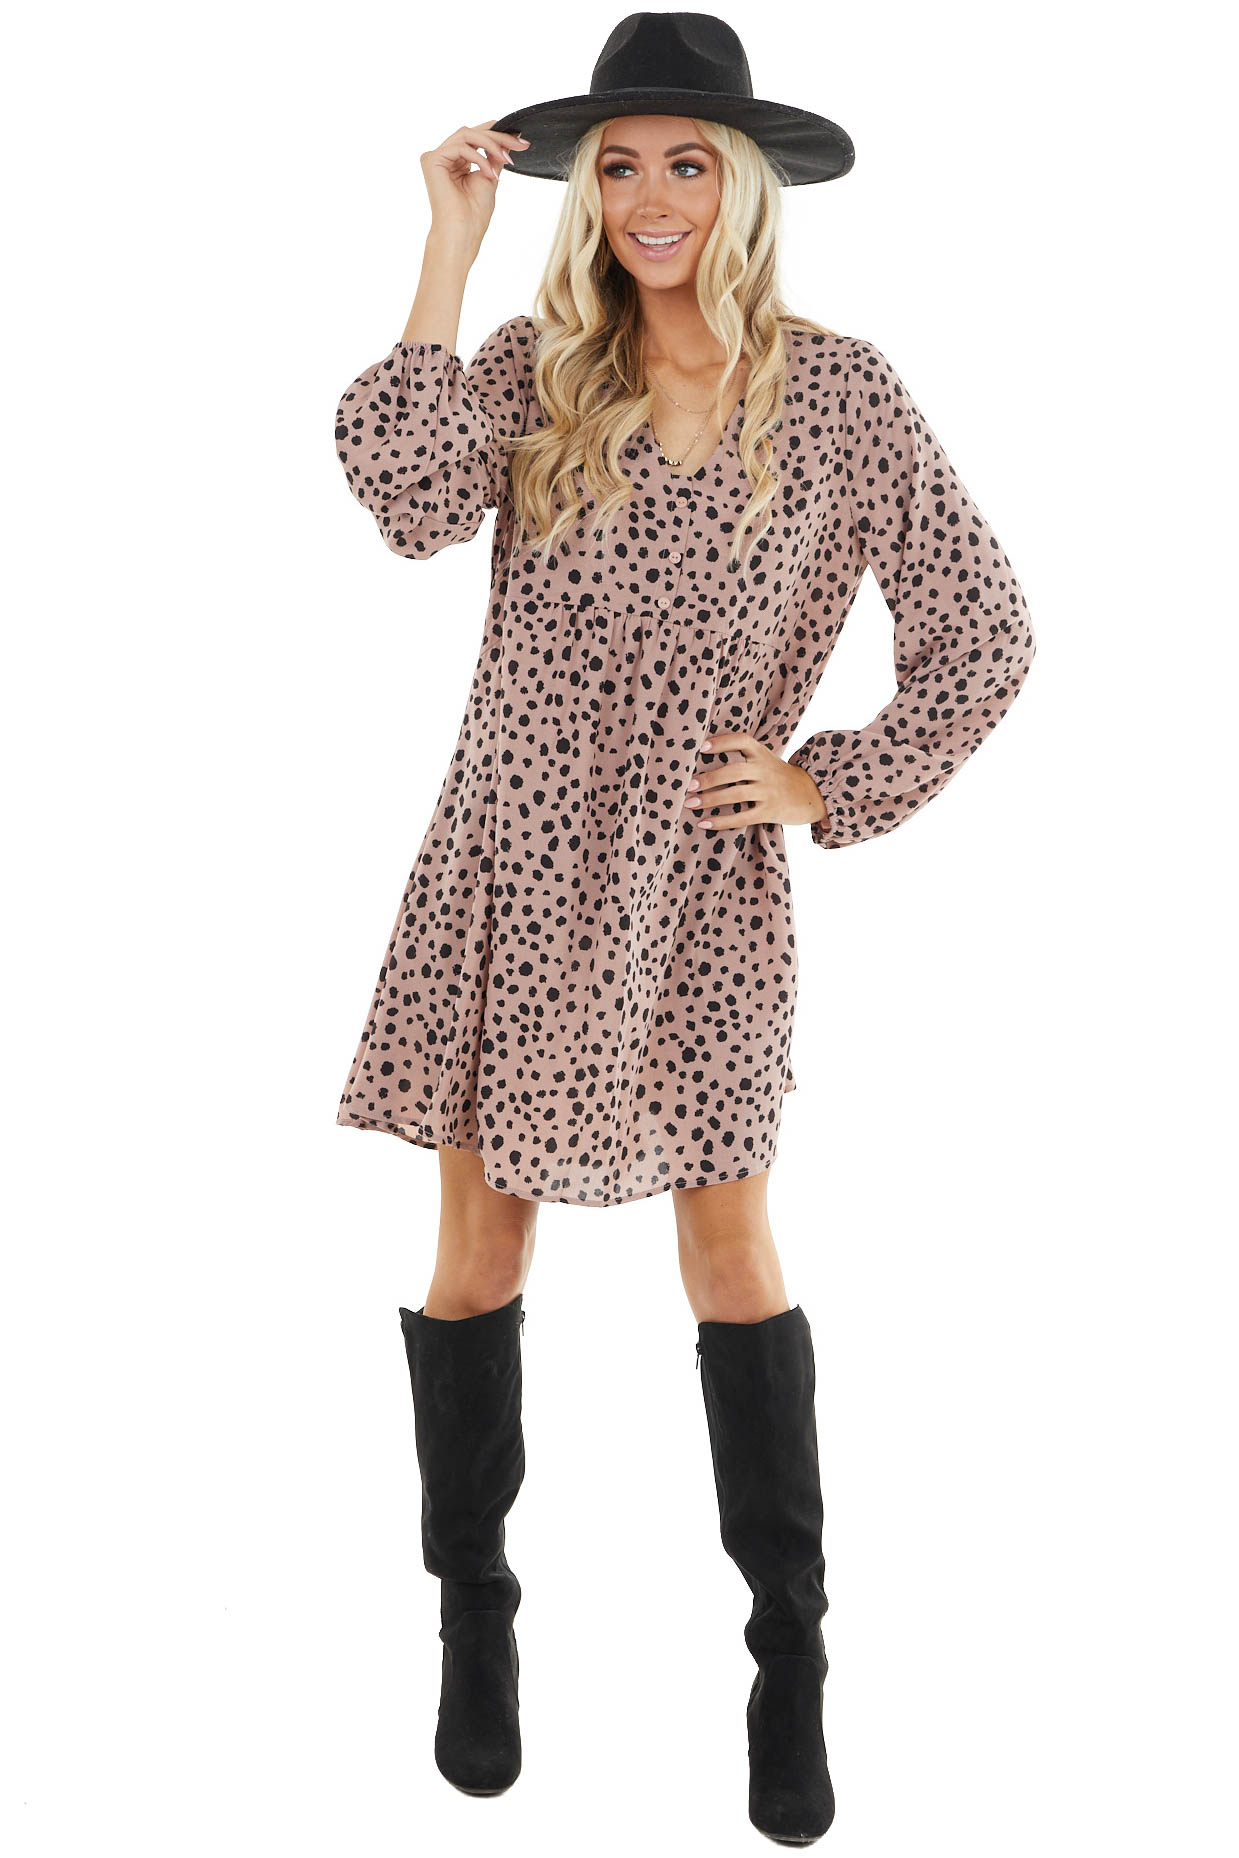 Dusty Rose Cheetah Print Baby Doll Dress with Puff Sleeves